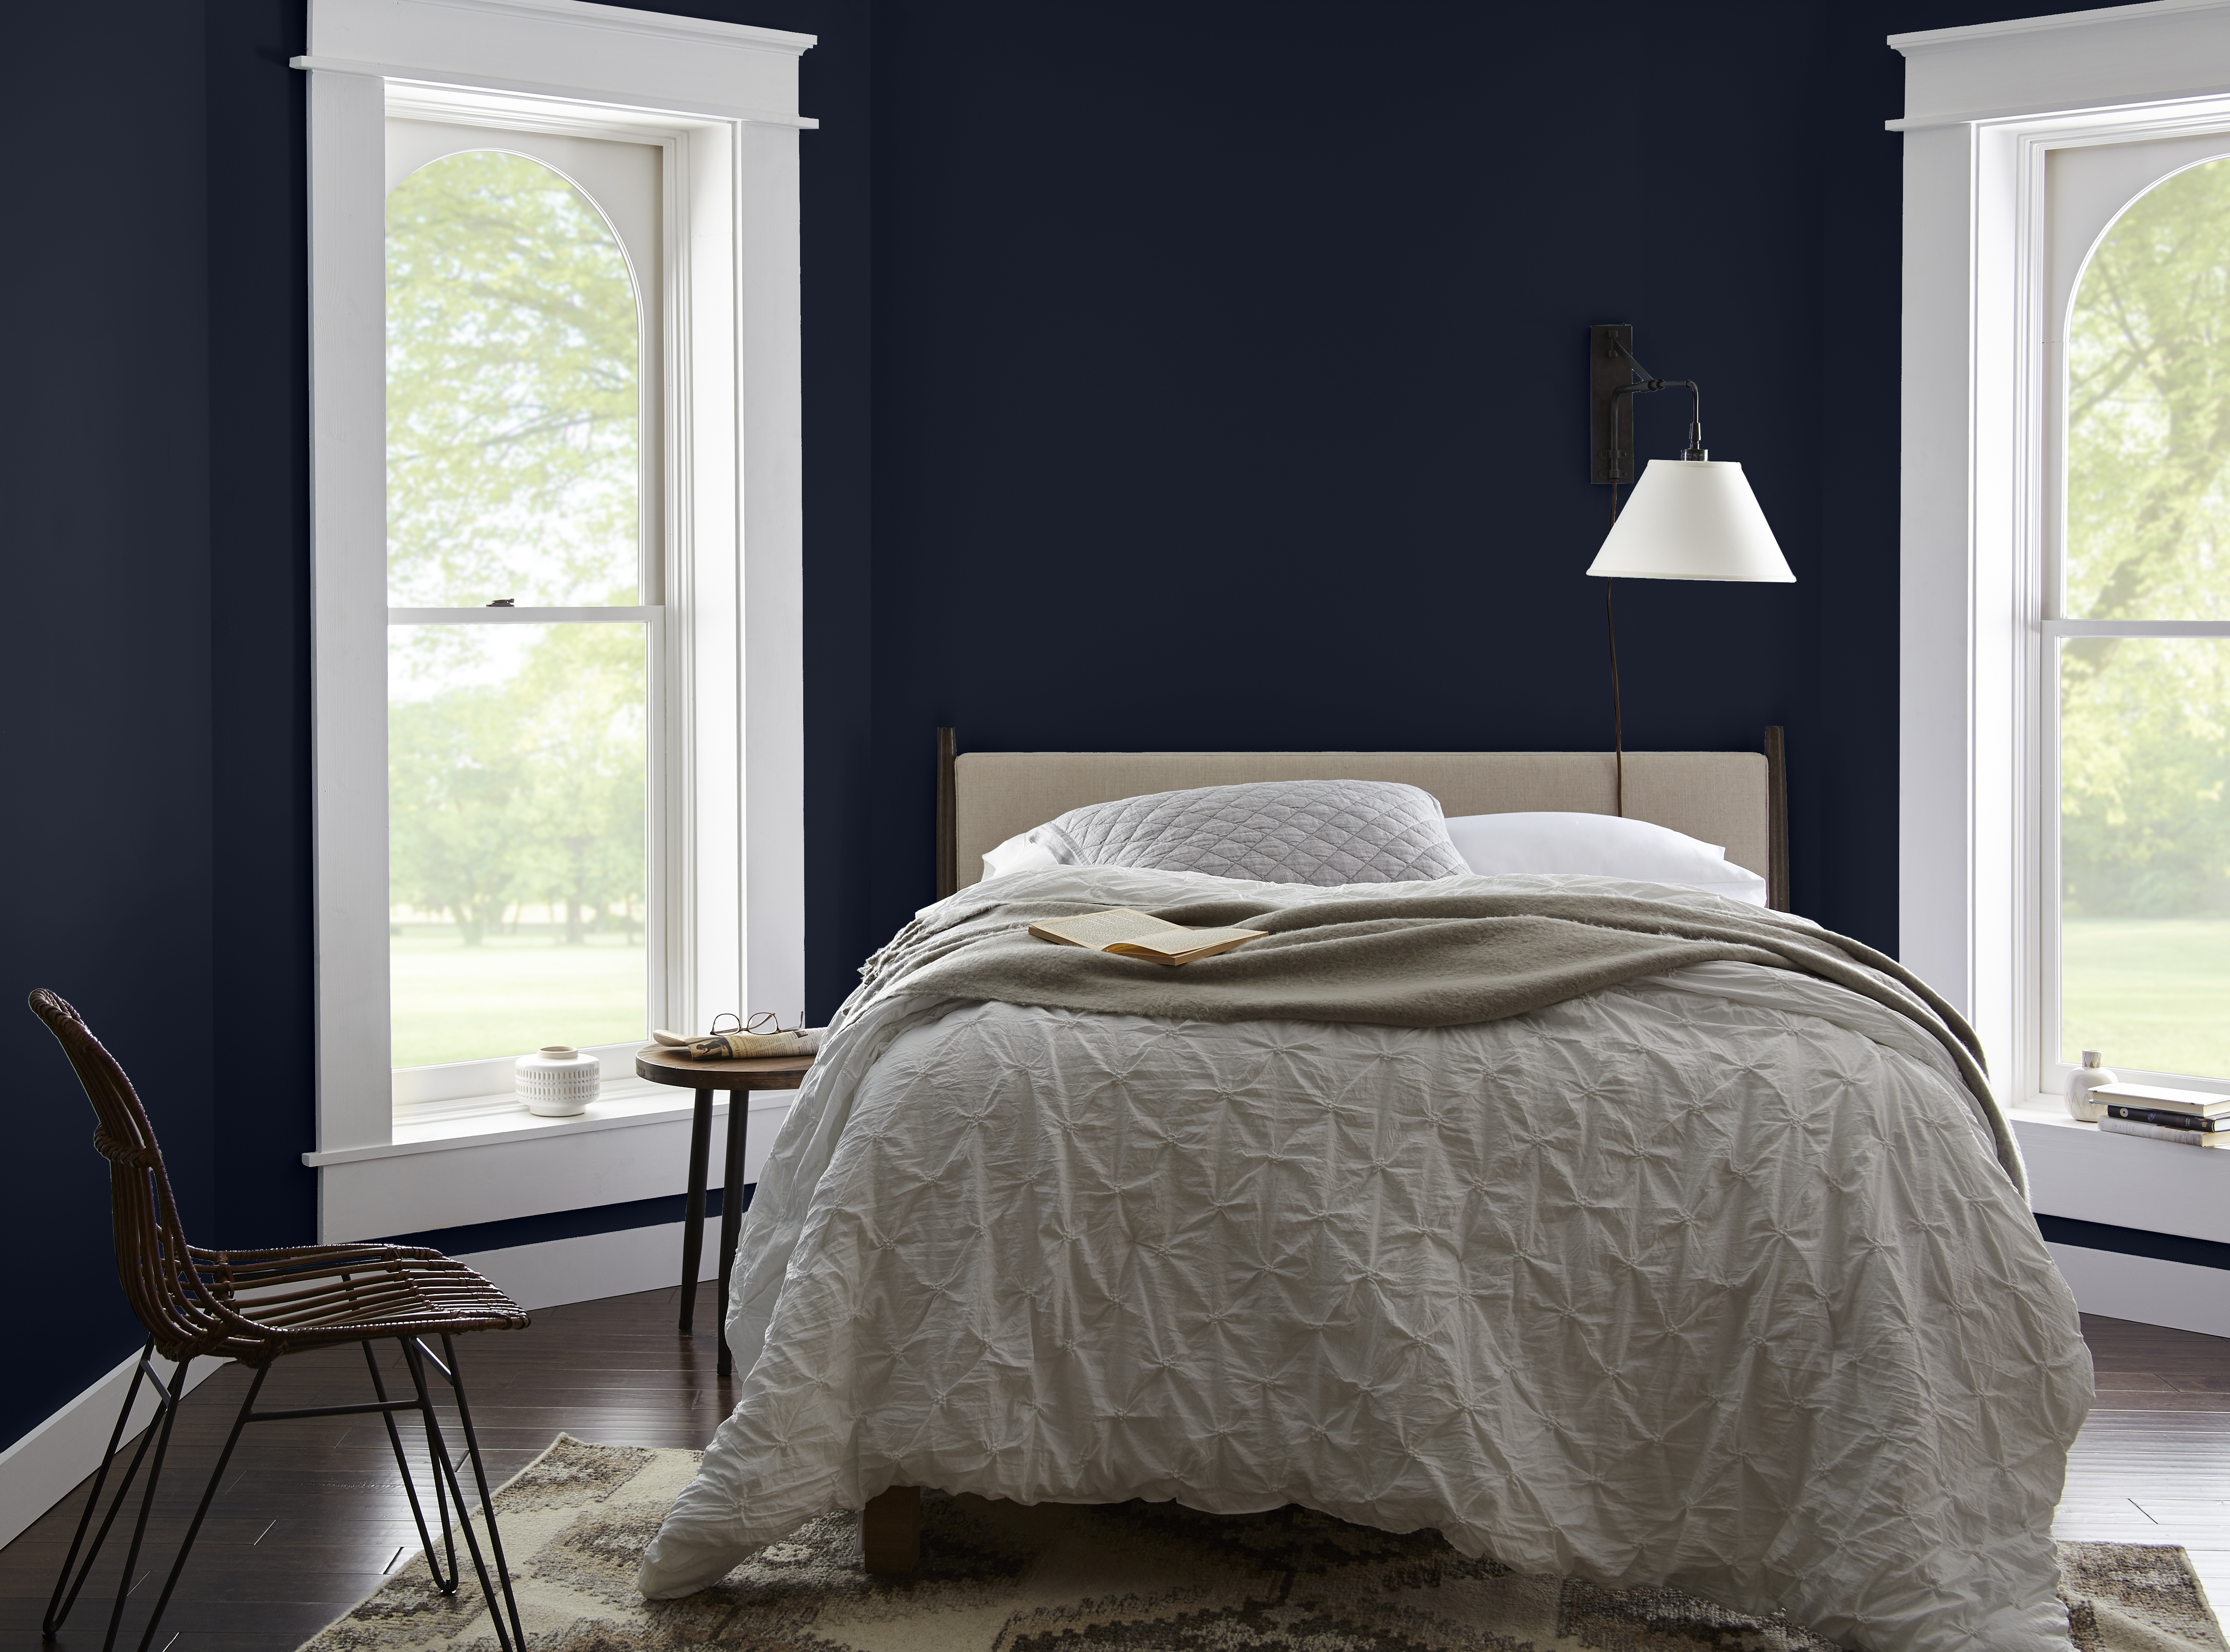 Behr Interior Paint Colors: Very Navy